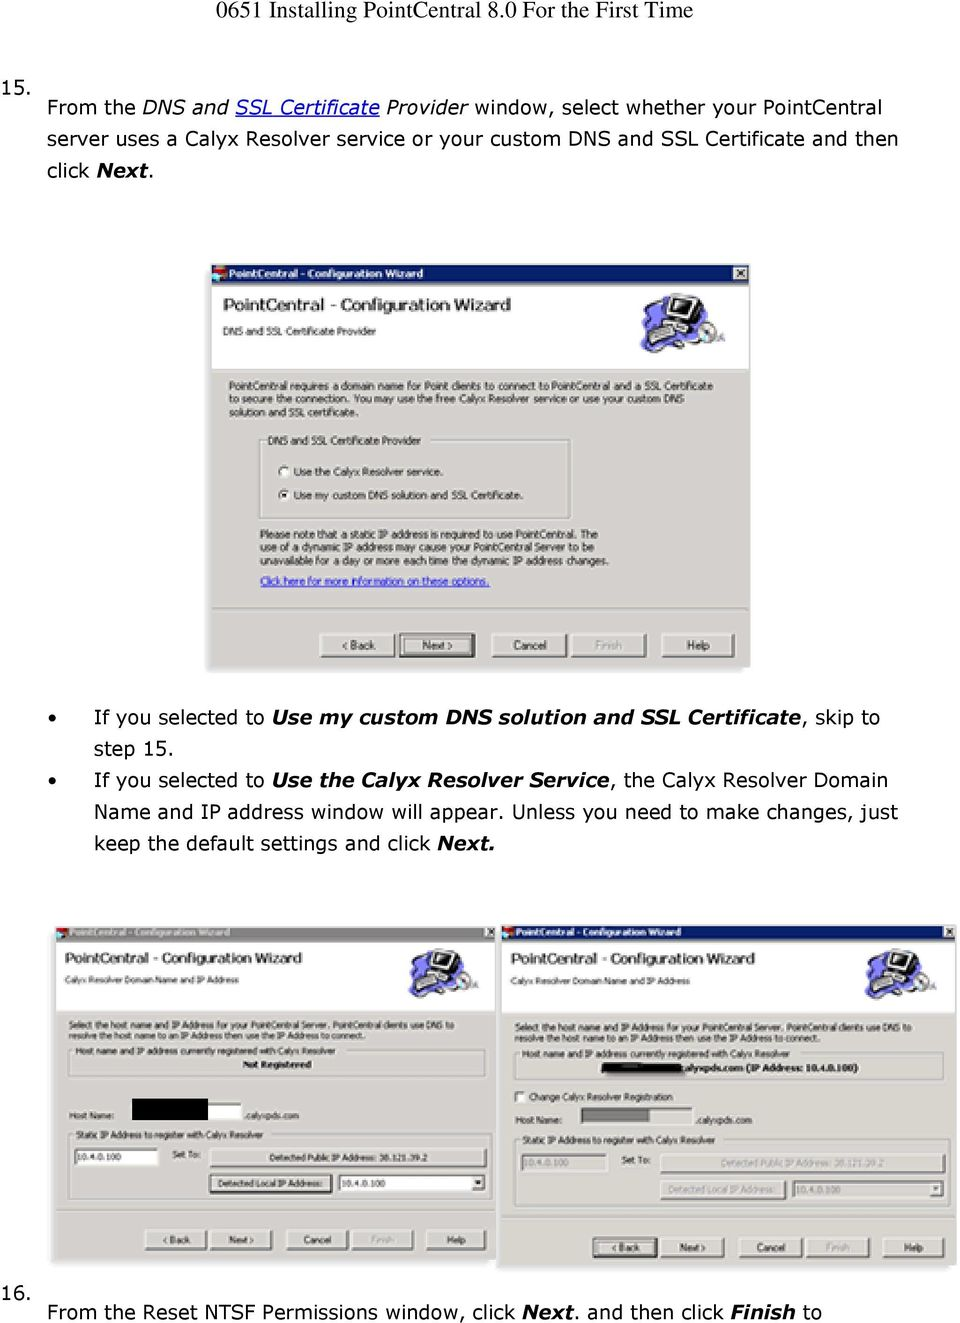 If you selected to Use the Calyx Resolver Service, the Calyx Resolver Domain Name and IP address window will appear.